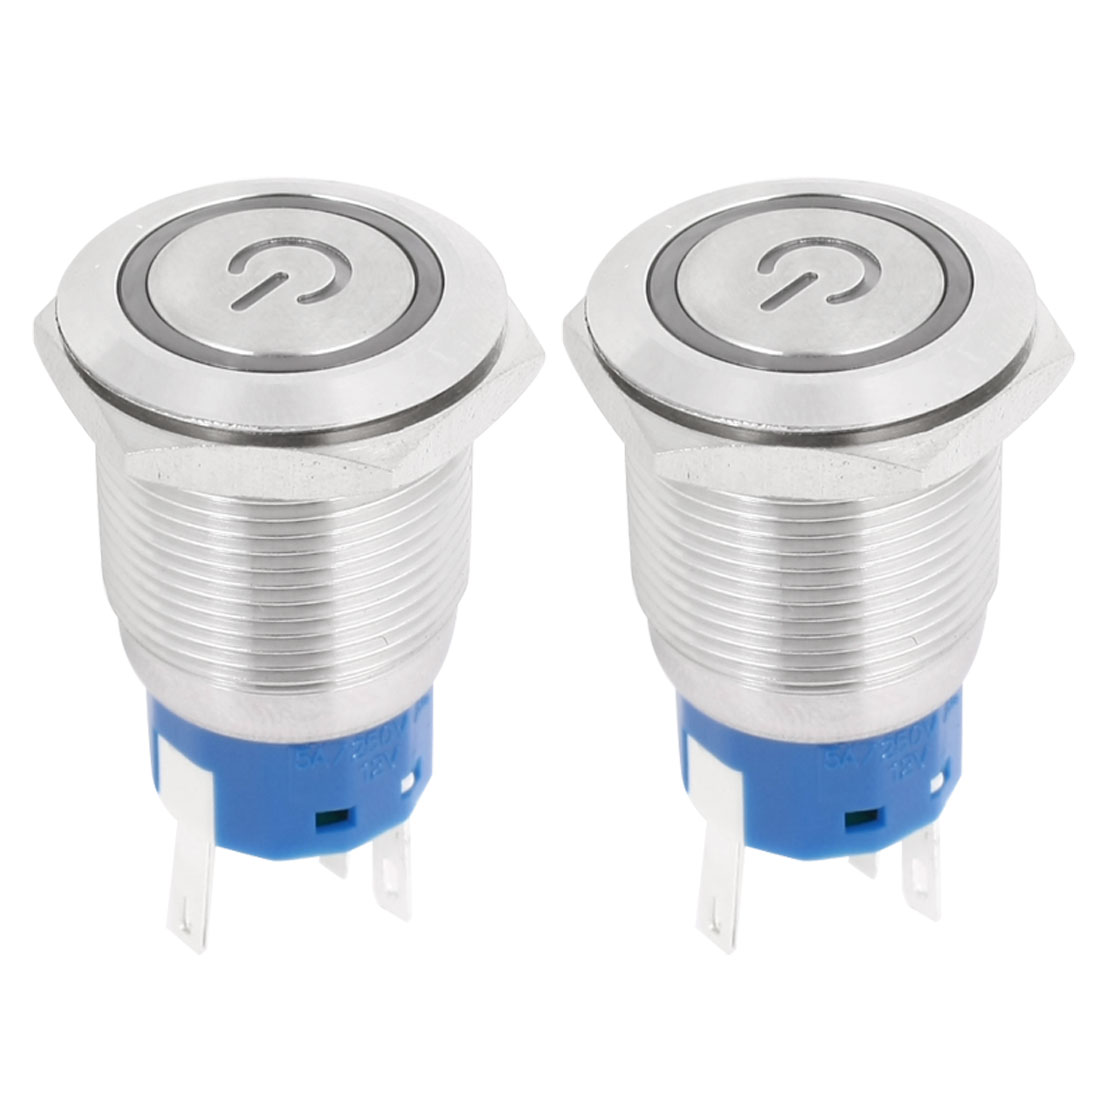 DC 12V Green LED Angel Eye Indicator Light SPDT 1NO 1NC 5Pins 19mm Thread Momentary Metal Push Button Switch 2pcs